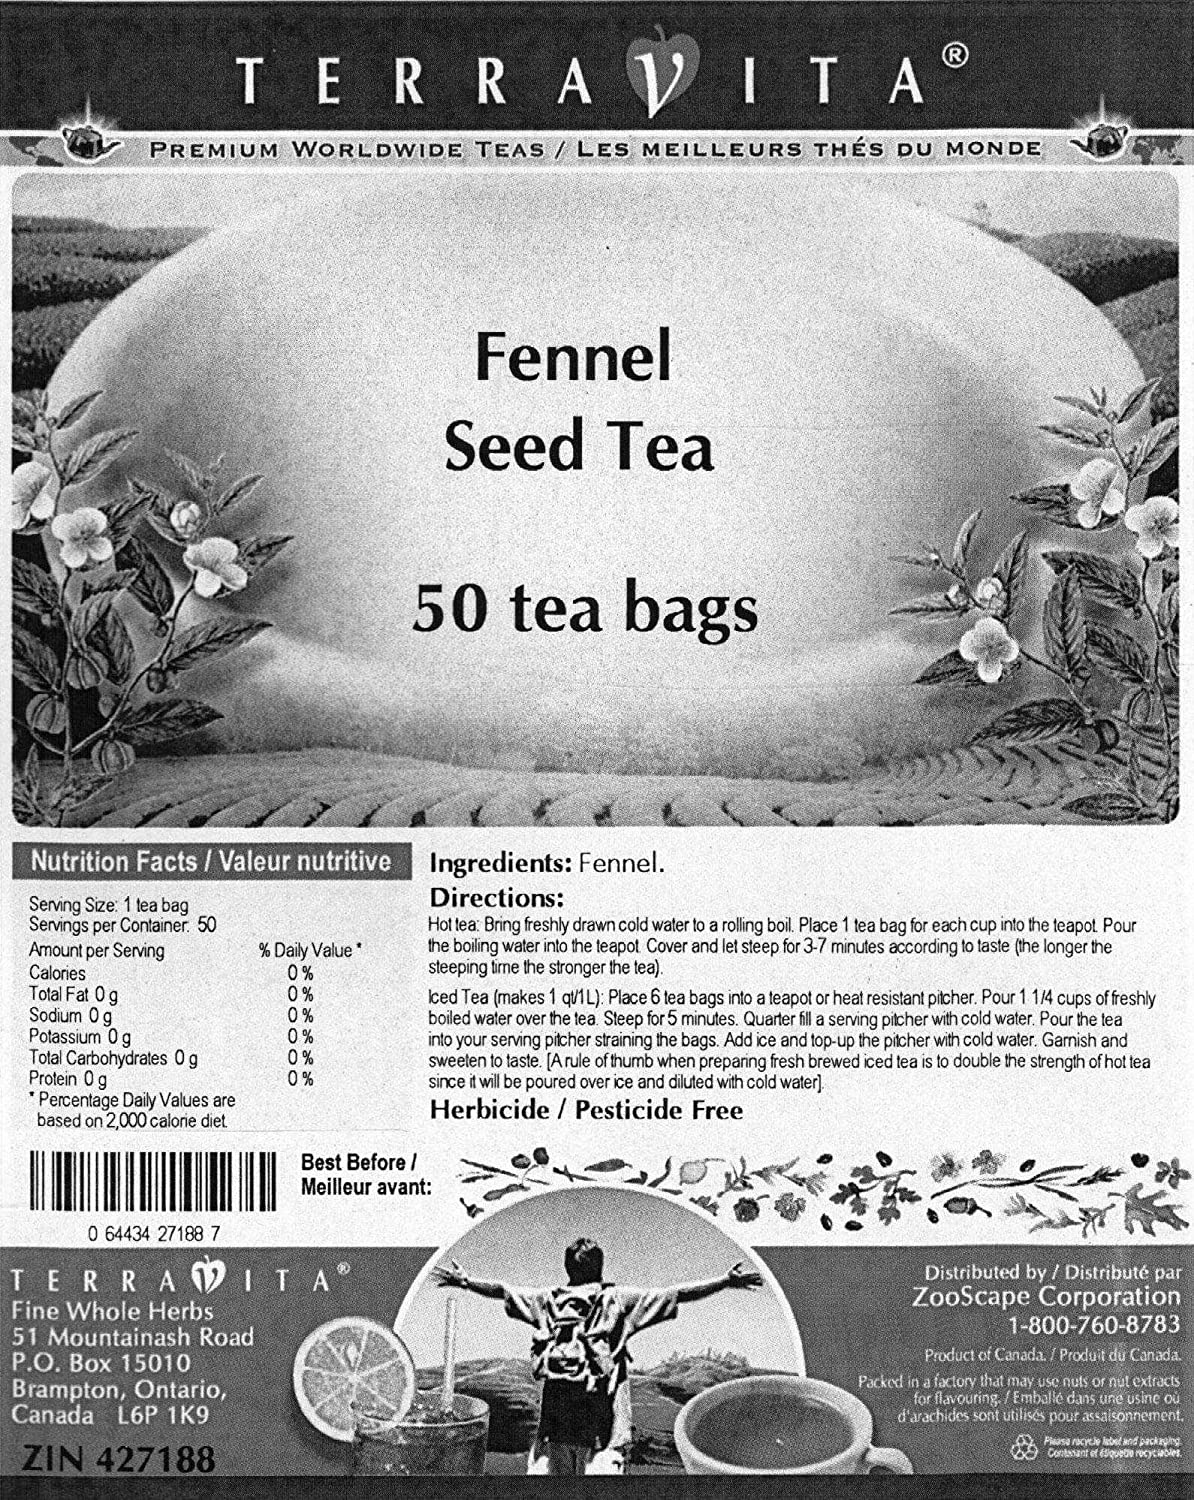 Amazon.com: Fennel Seed Tea (50 Tea Bags, ZIN: 427188): Health & Personal Care